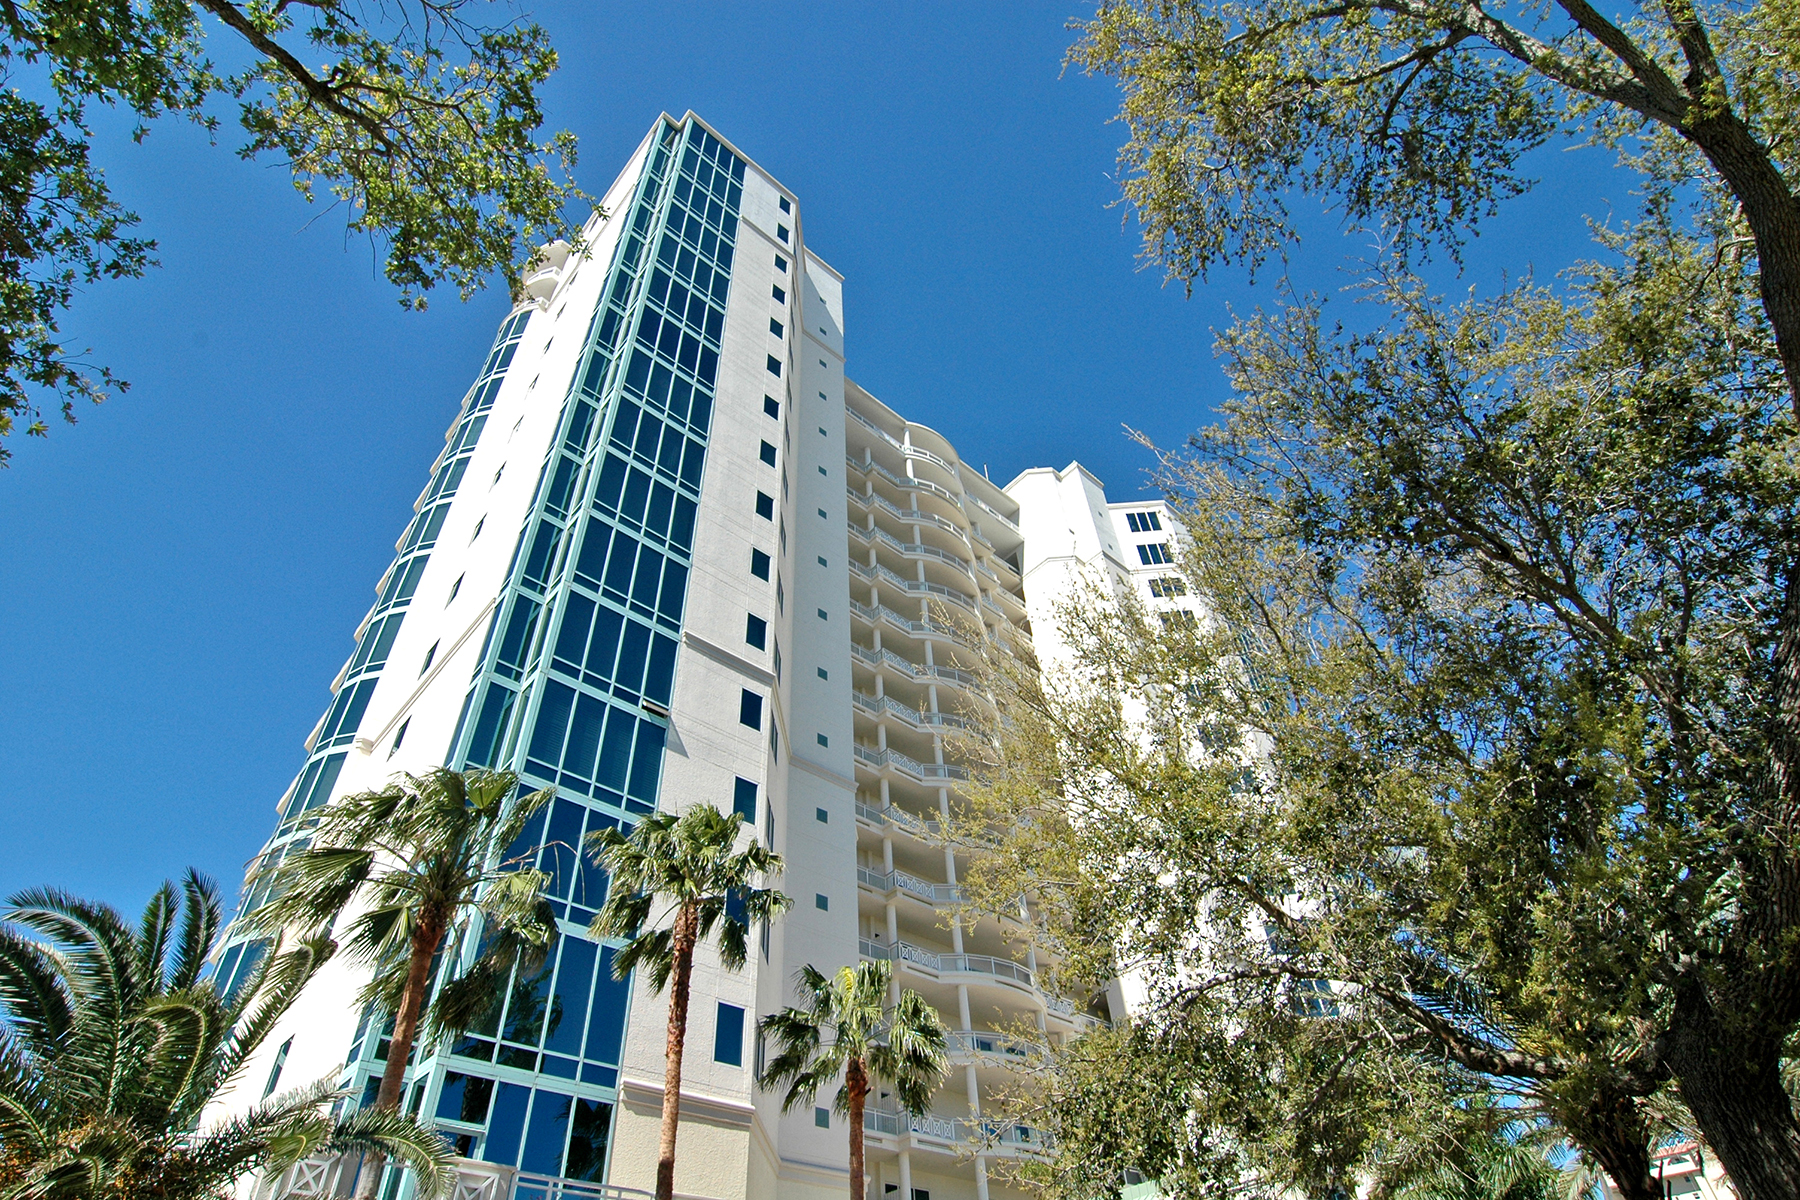 Condominium for Sale at SARASOTA 340 S Palm Ave 61, Sarasota, Florida 34236 United States